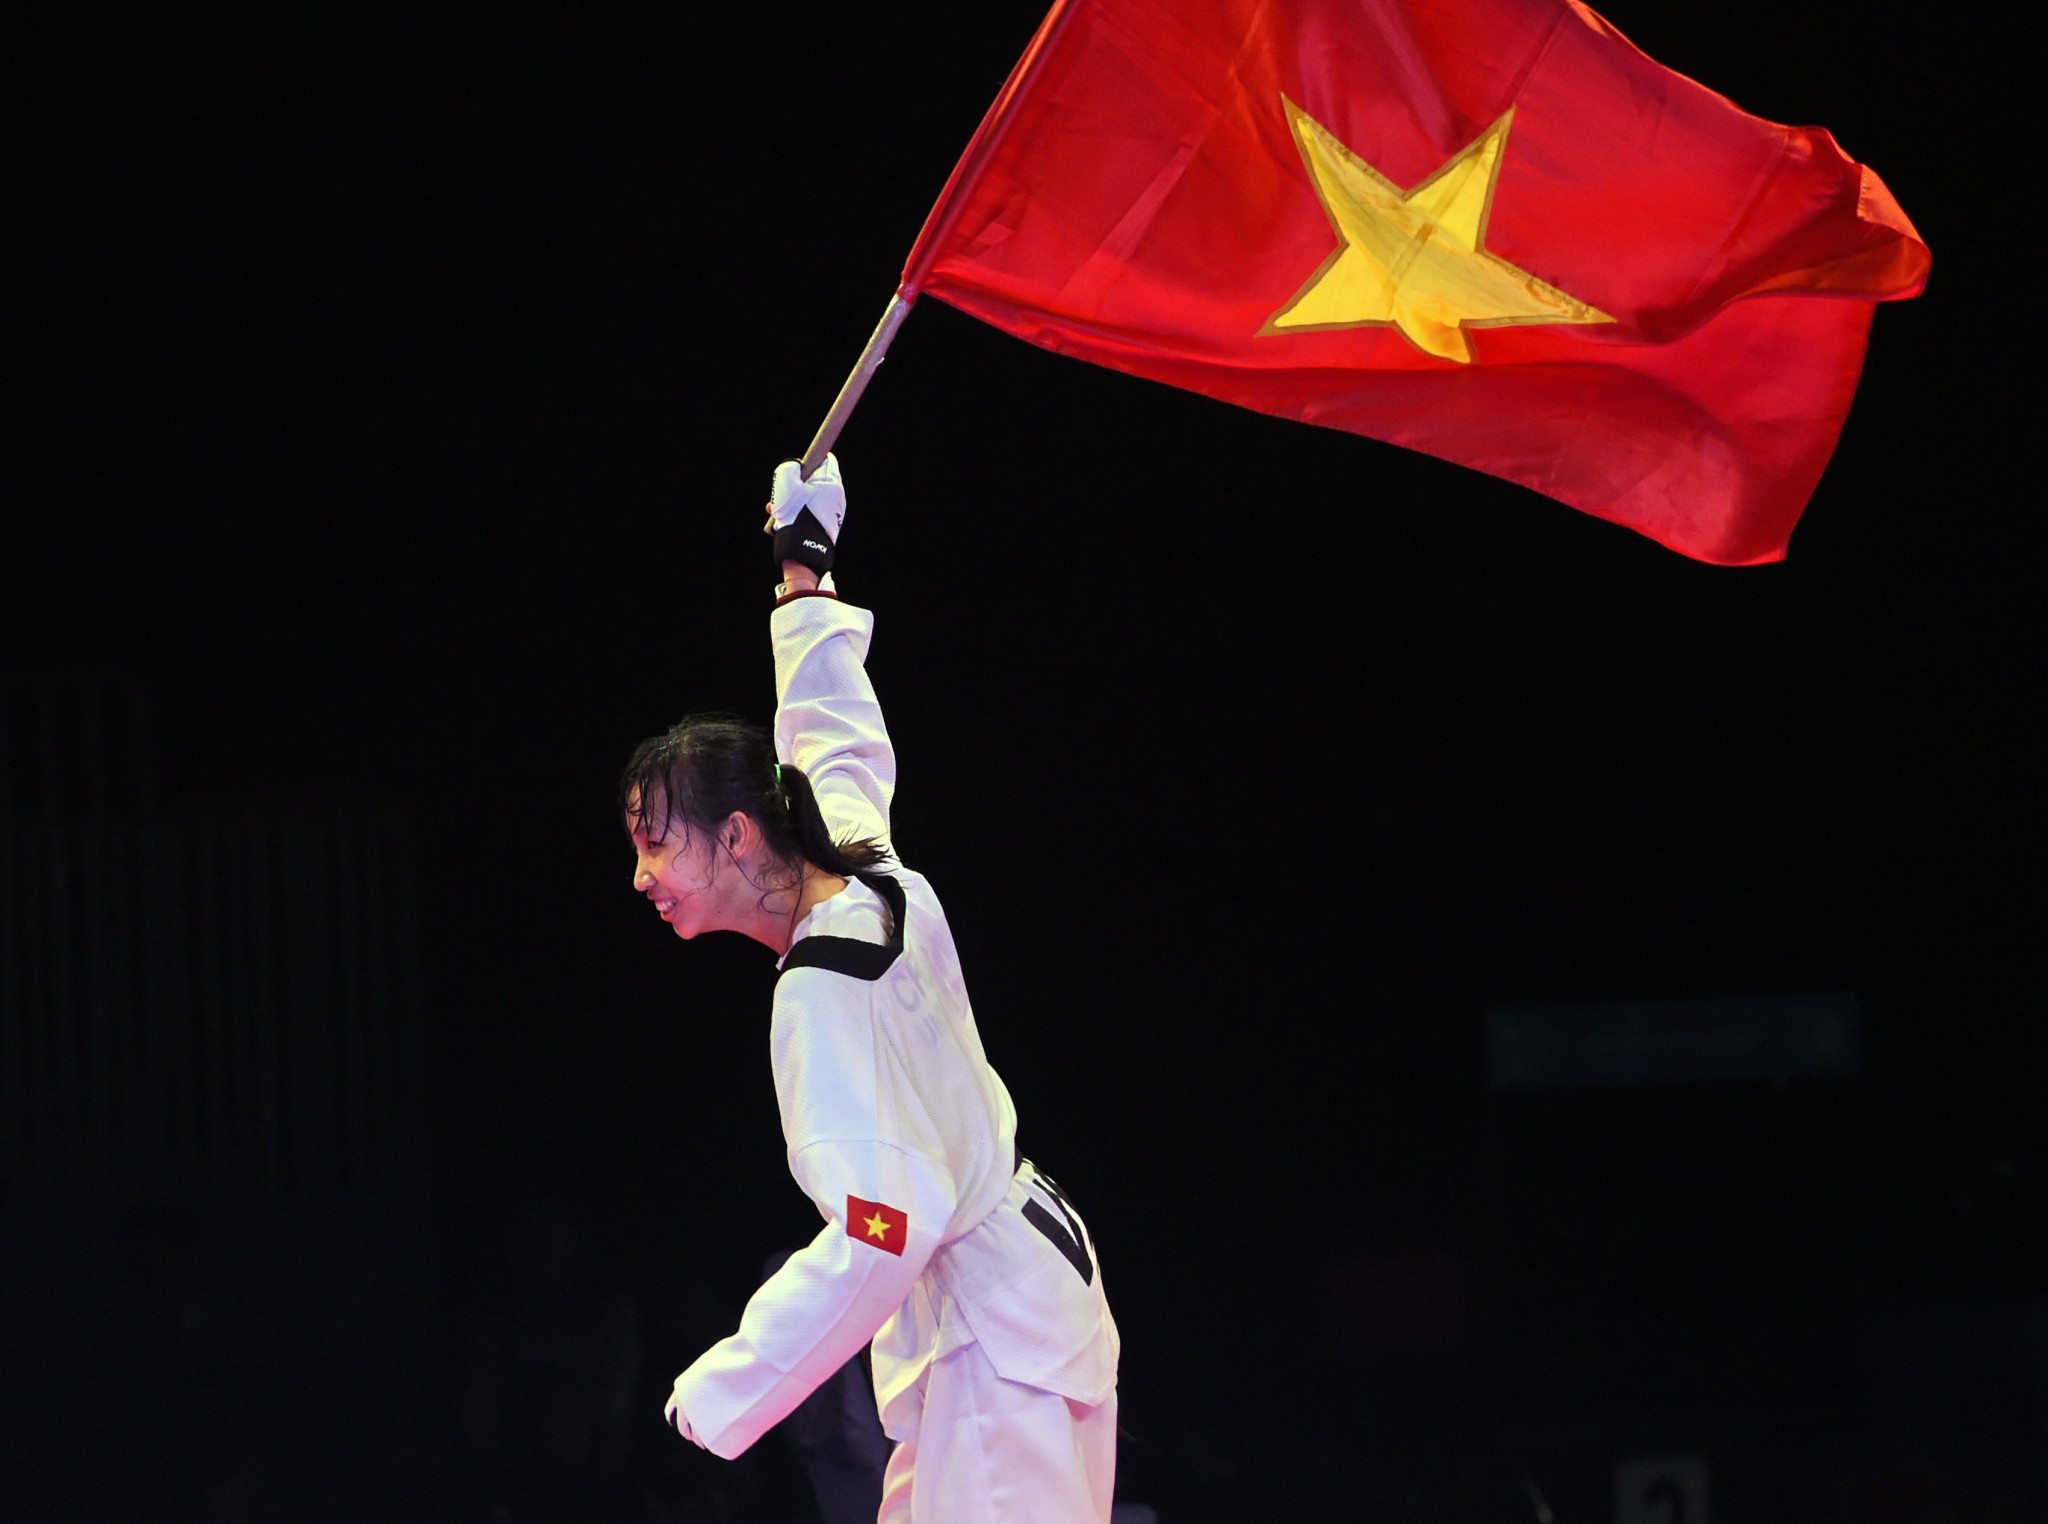 Coach of Vietnam taekwondo star reveals initial reluctance of Olympian's parents